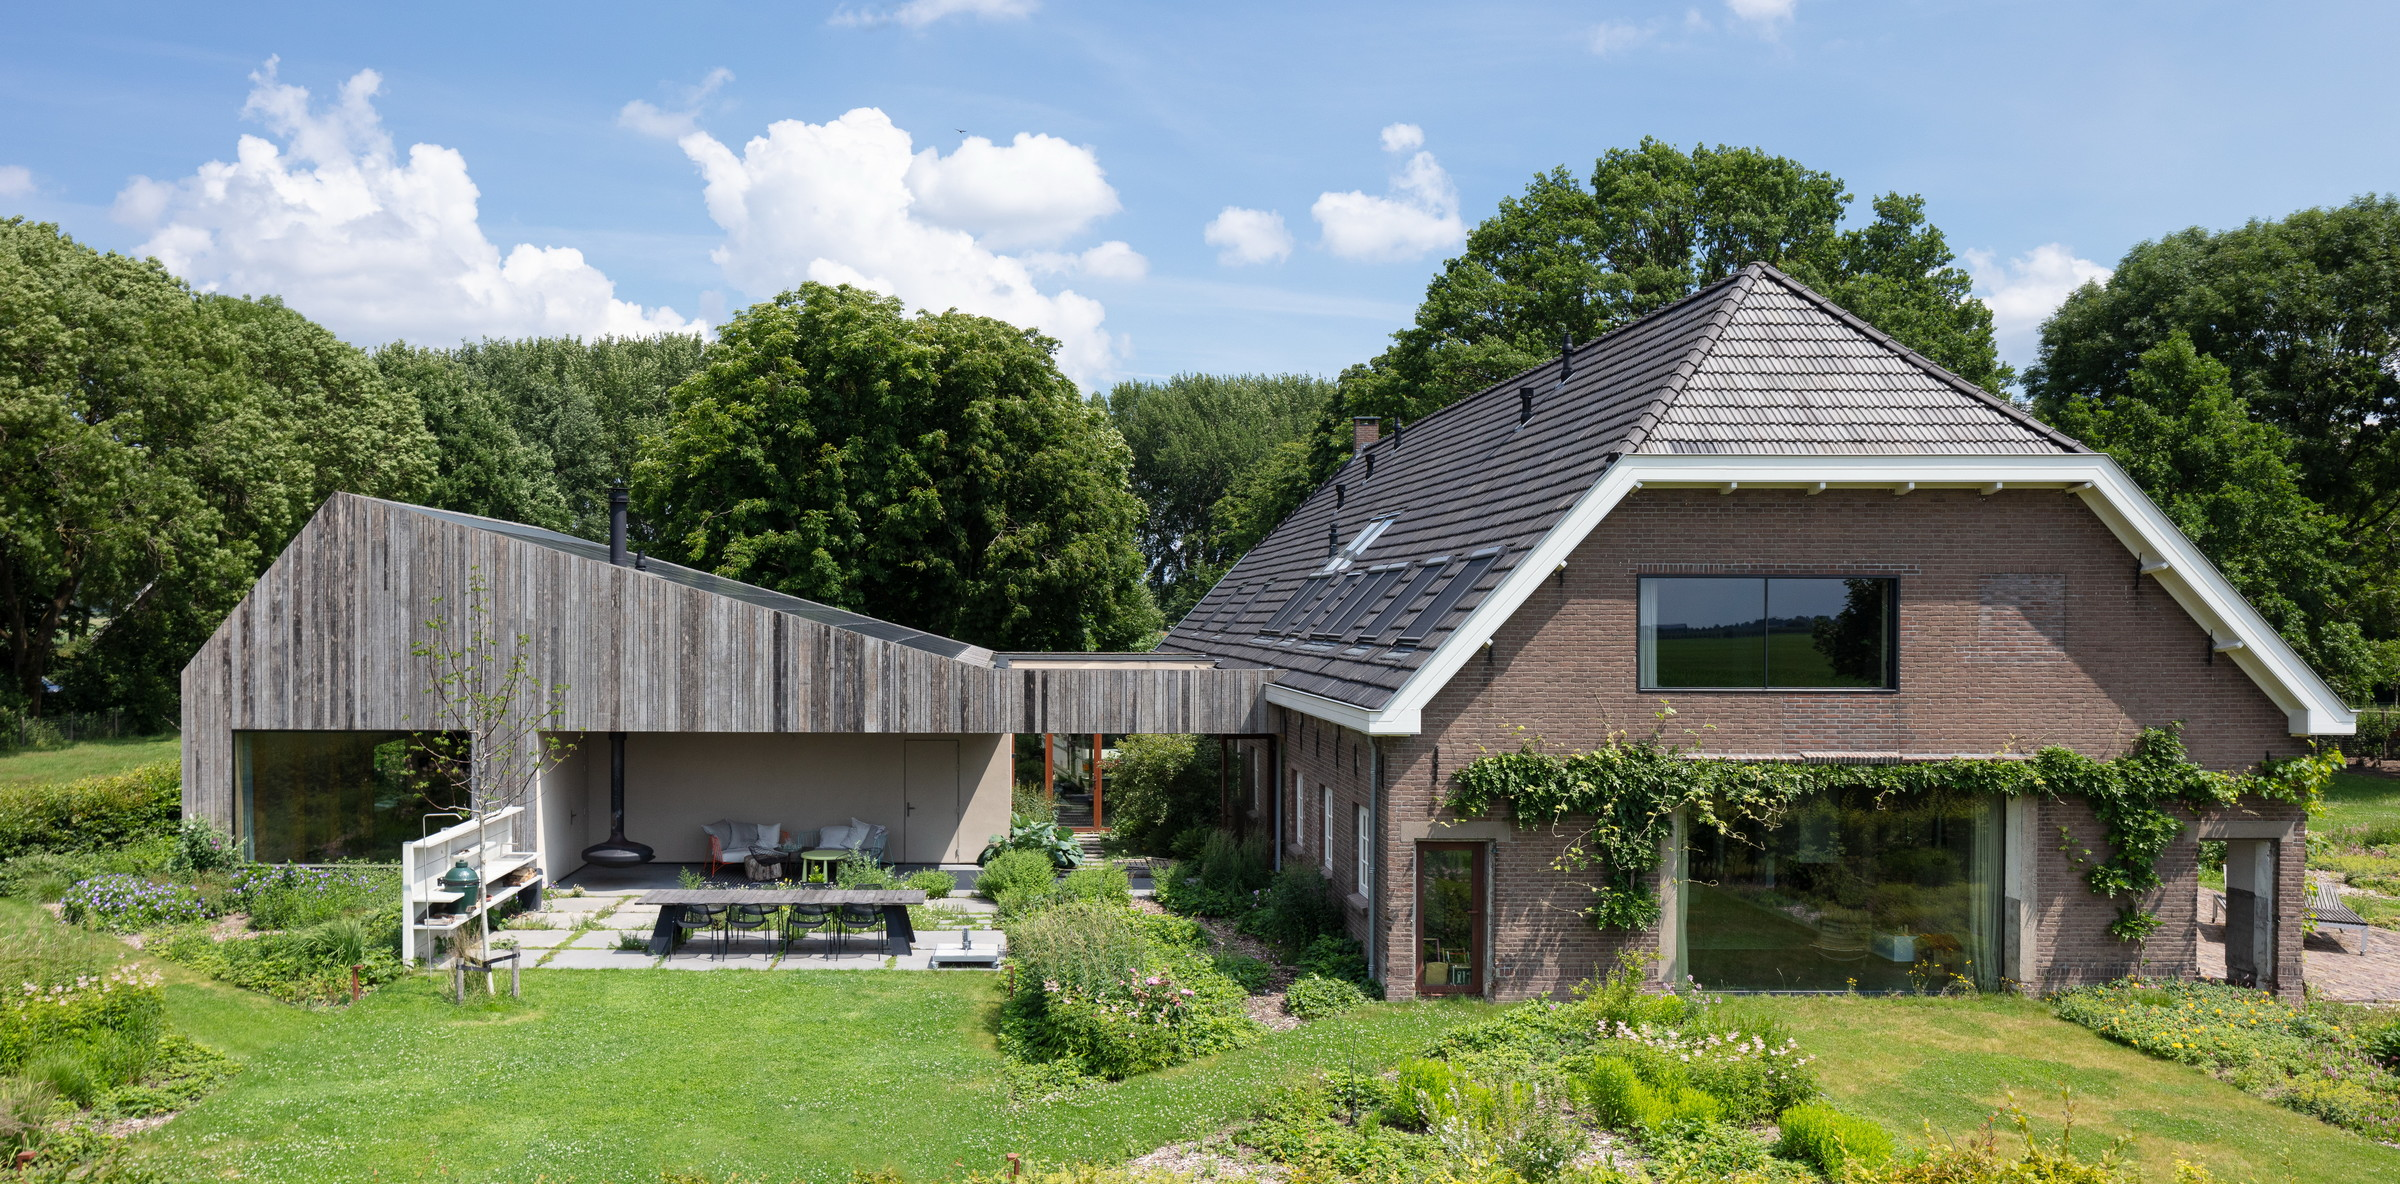 05-Zecc_Architecten-Farm_house-Utrecht-wood-concret.JPG